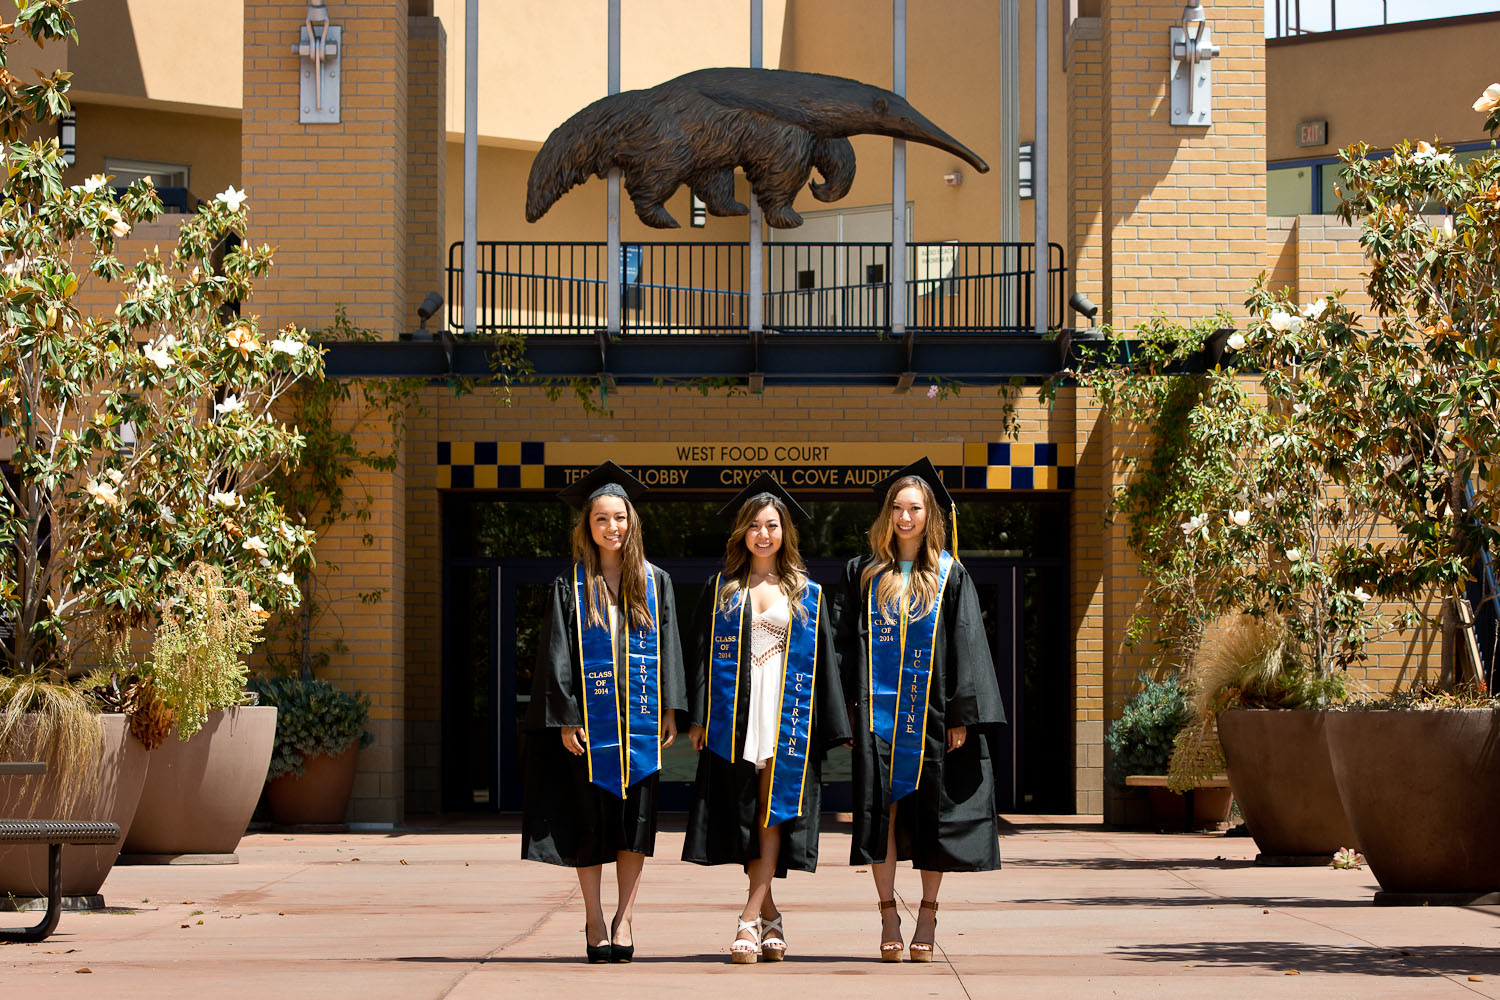 Bryan-Miraflor-Photography-Group-Shawna-Nancy-Lizzy-Grad-Photoshoot-UCI-20140607-0038.jpg